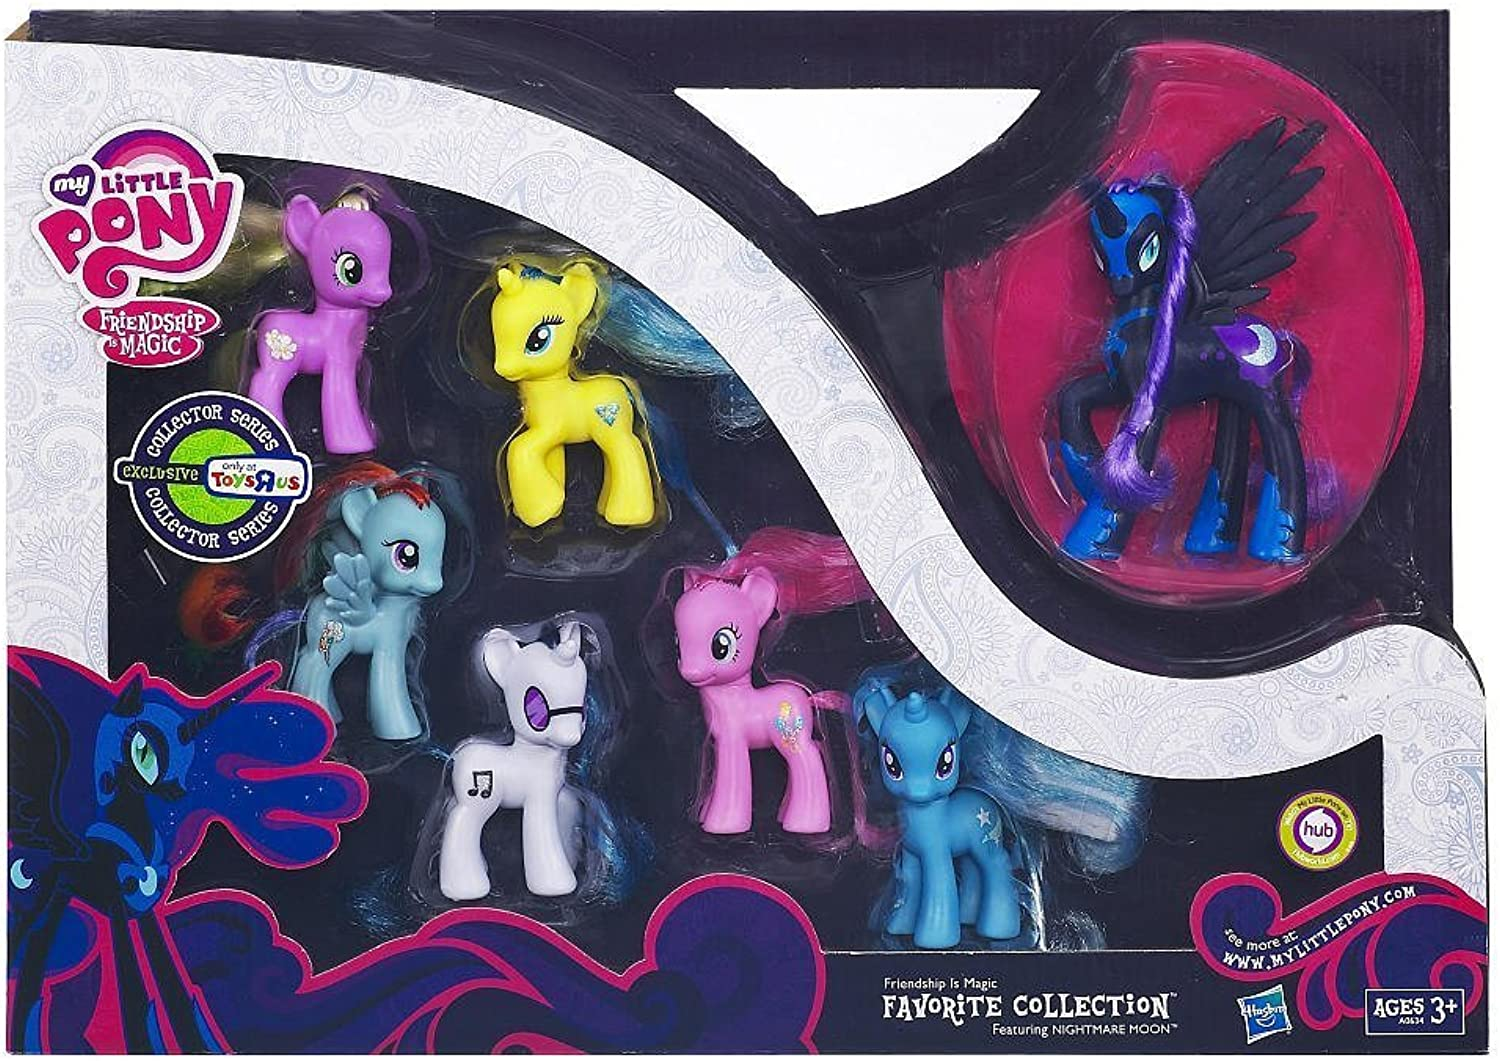 Hasbro Nightmare Moon My Little Pony Friendship is Magic  Favorite Collection  Collector Series New Release 2012